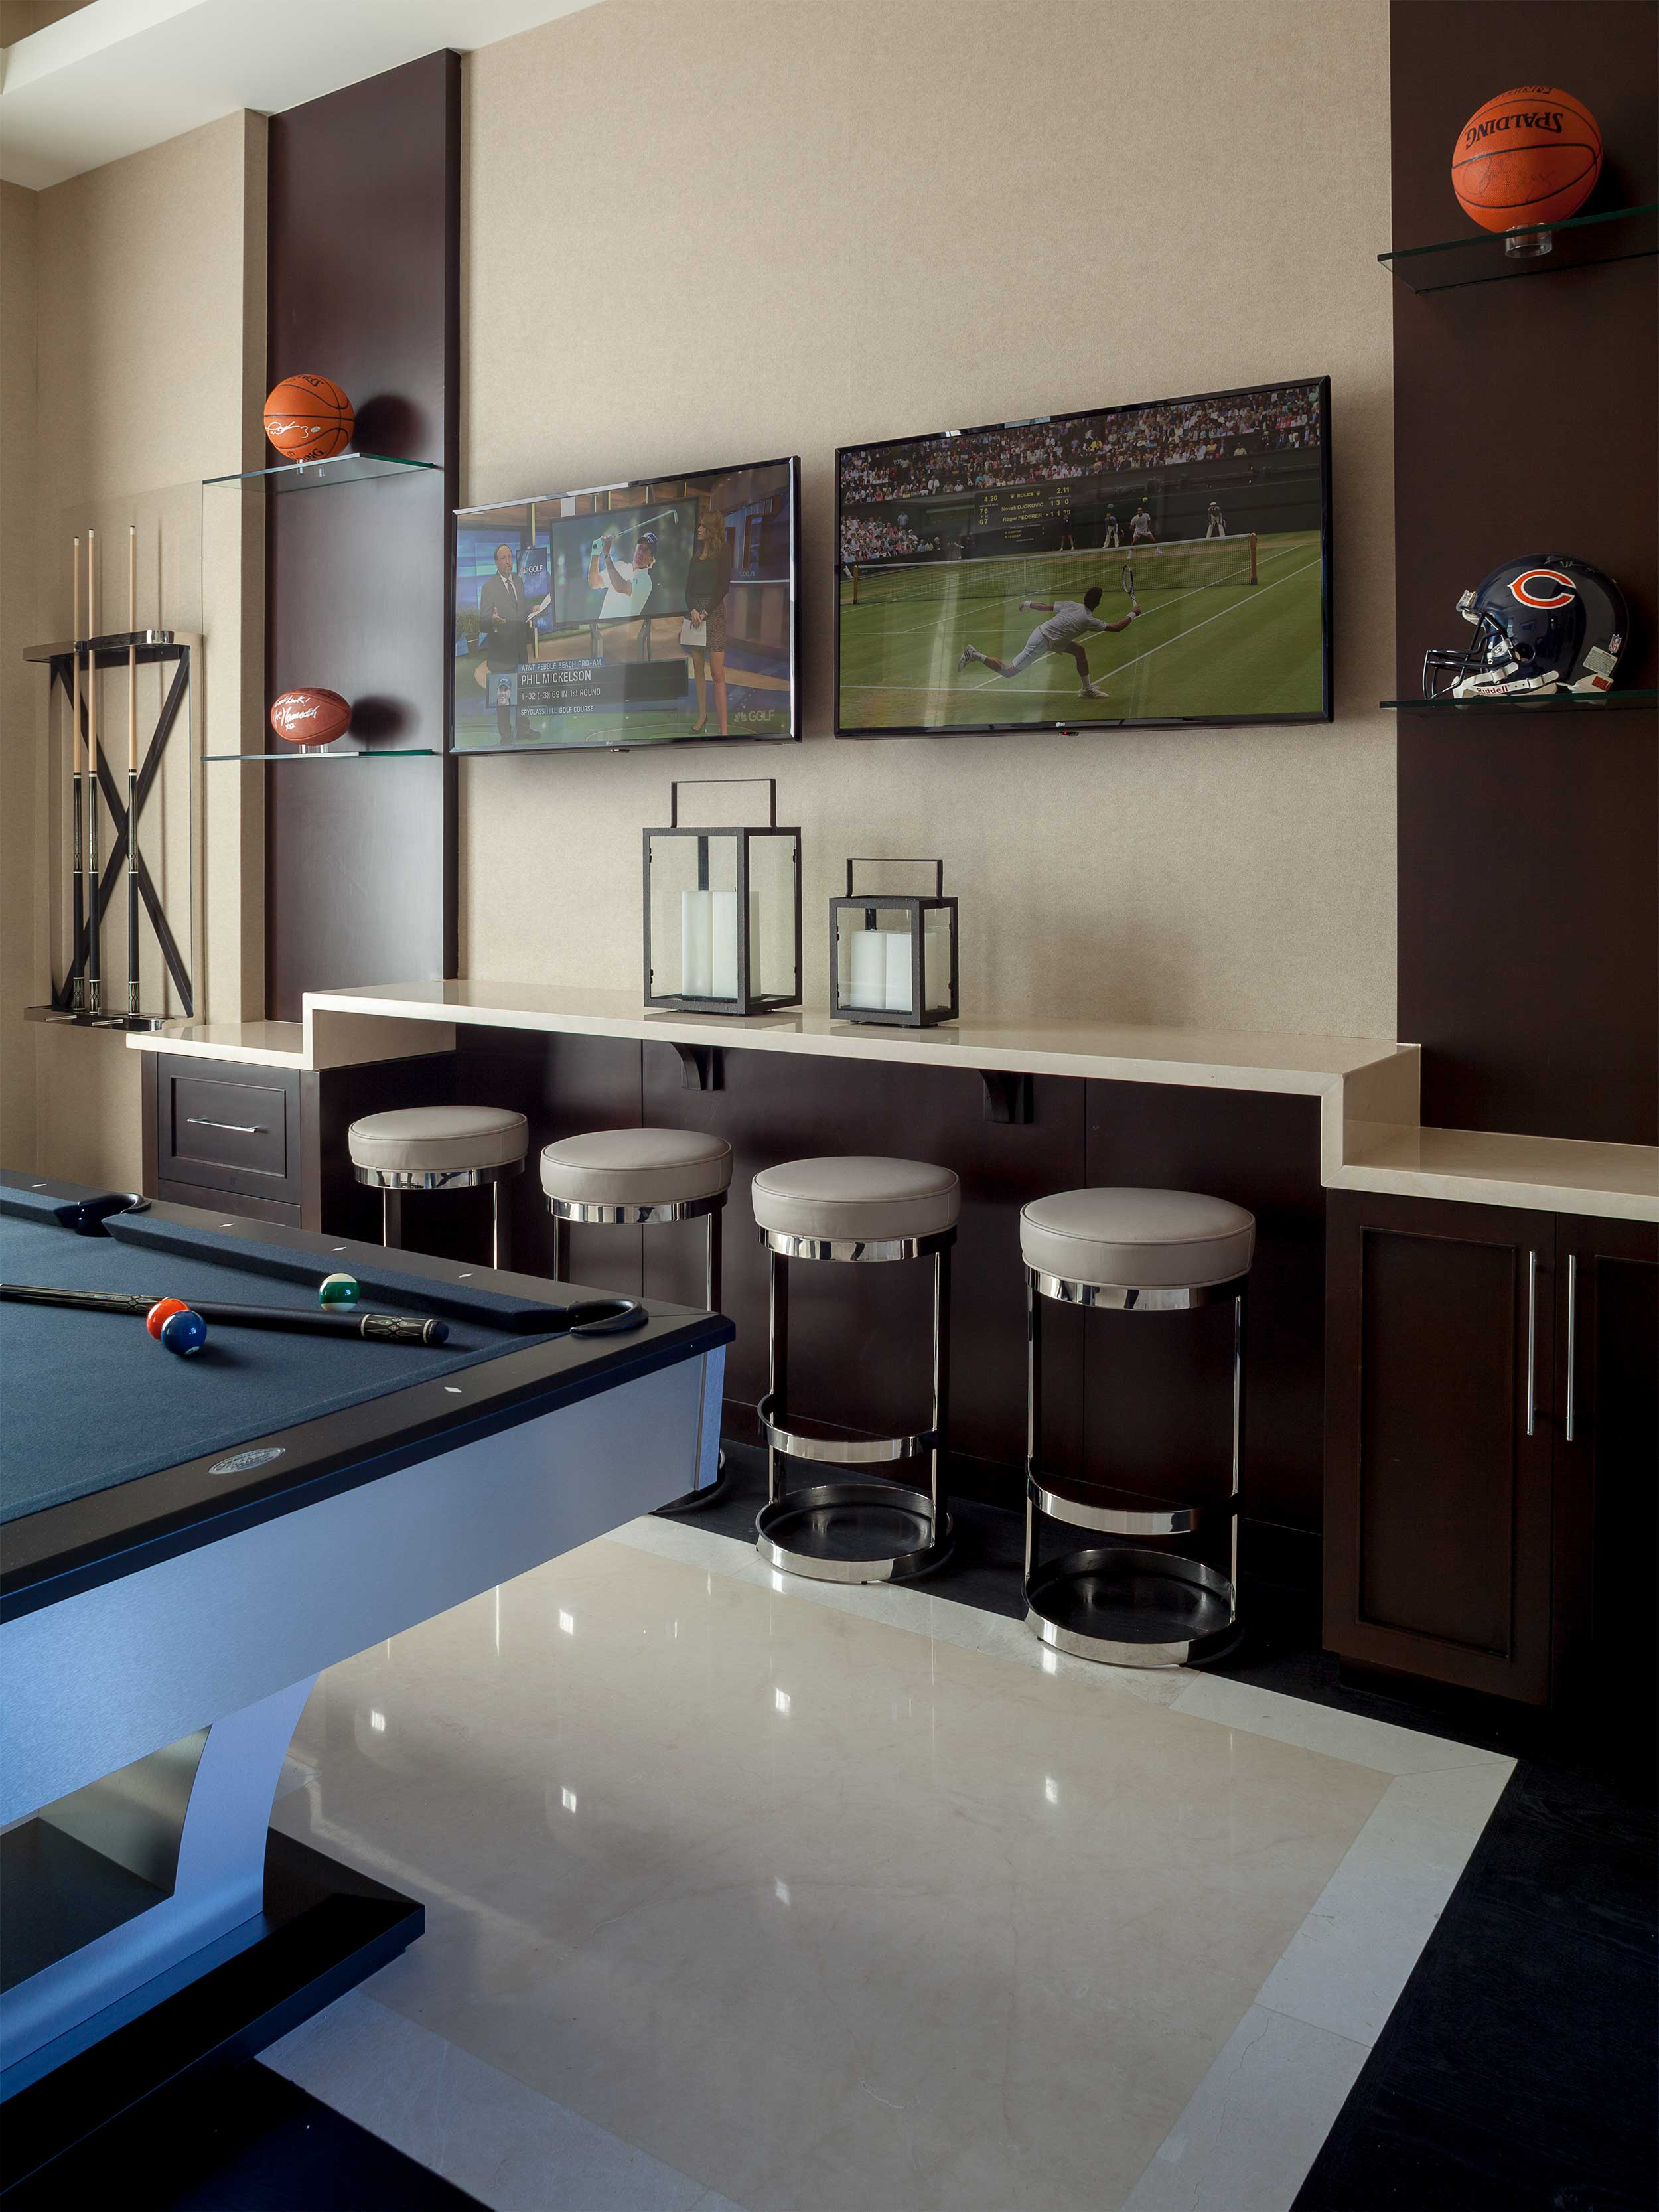 Game room in Residential Interior Design Project in Jupiter, FL